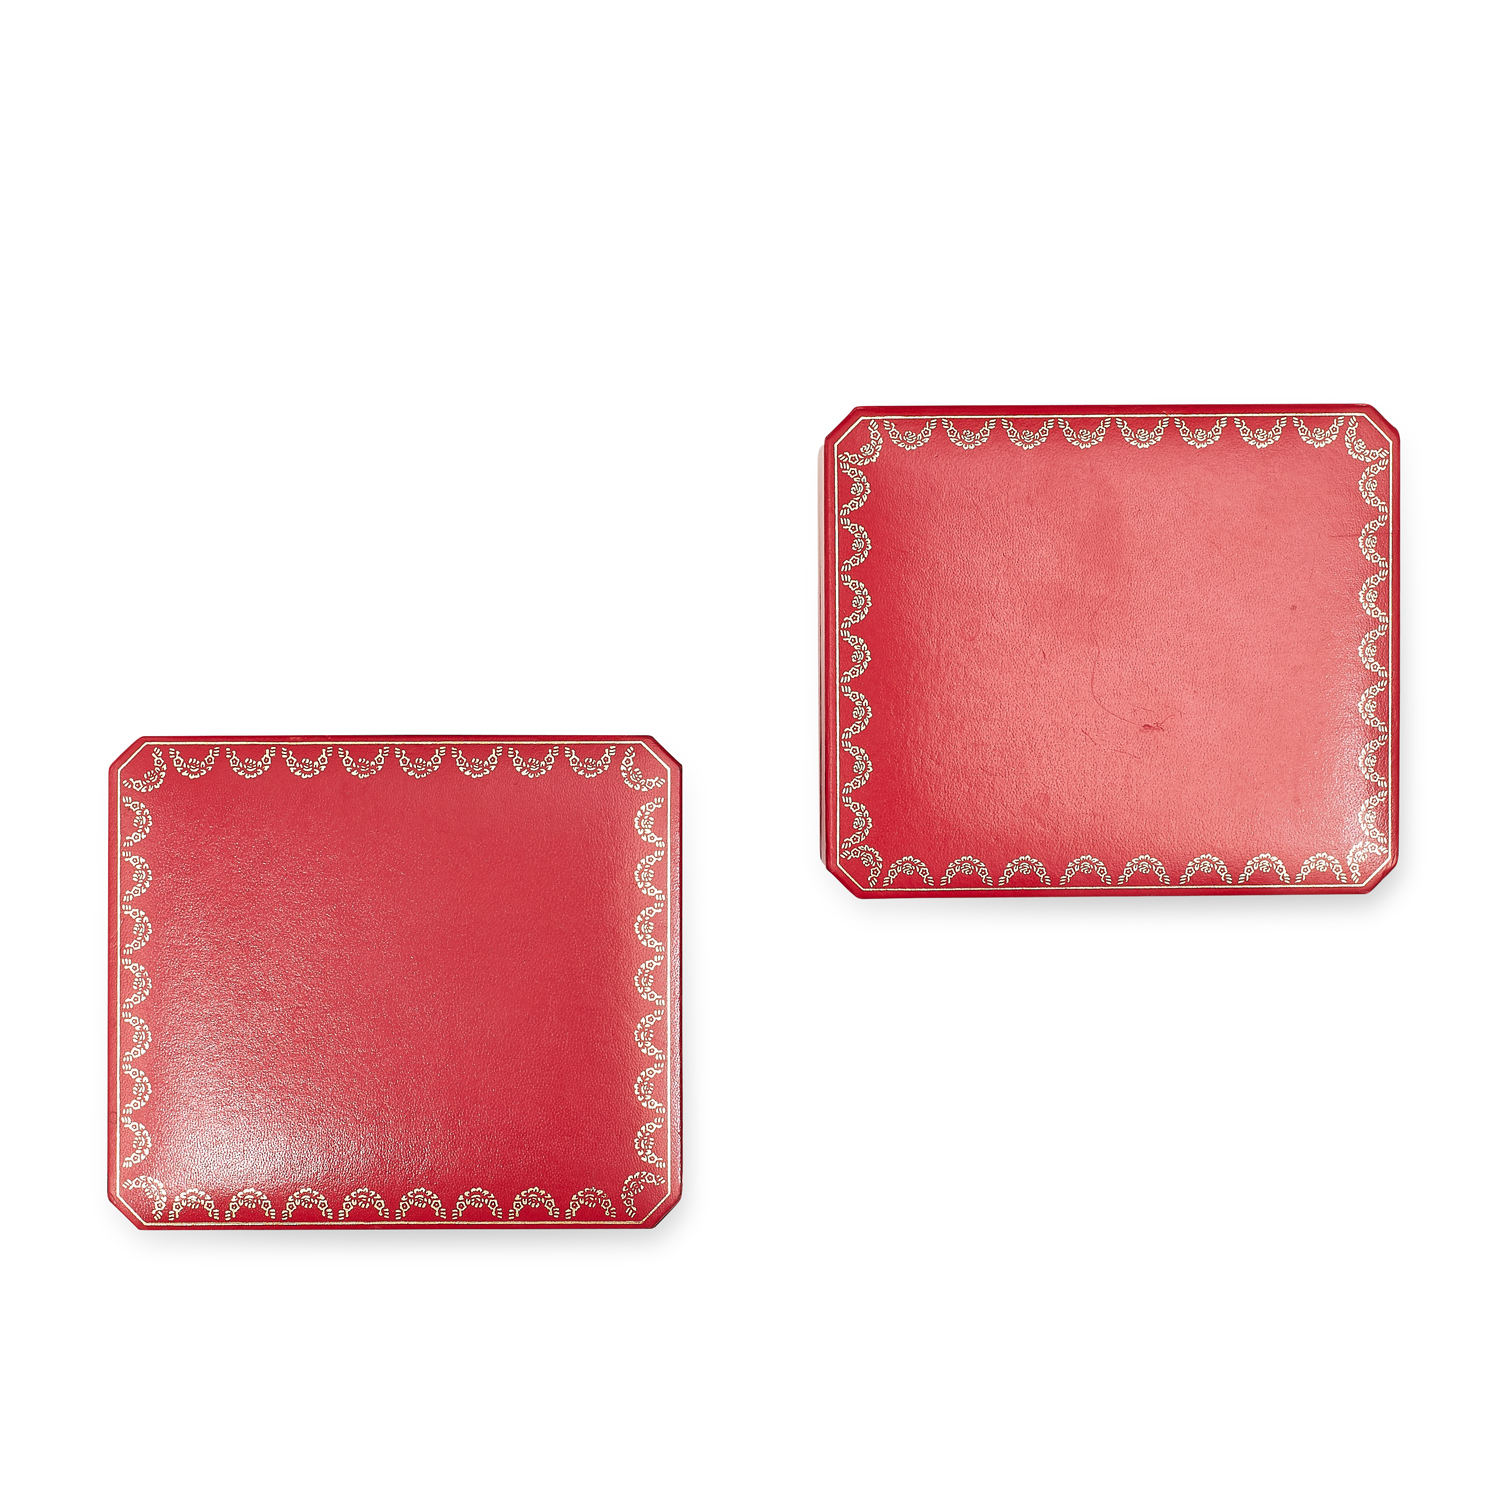 TWO LEATHER WRIST WATCH BOXES, CARTIER